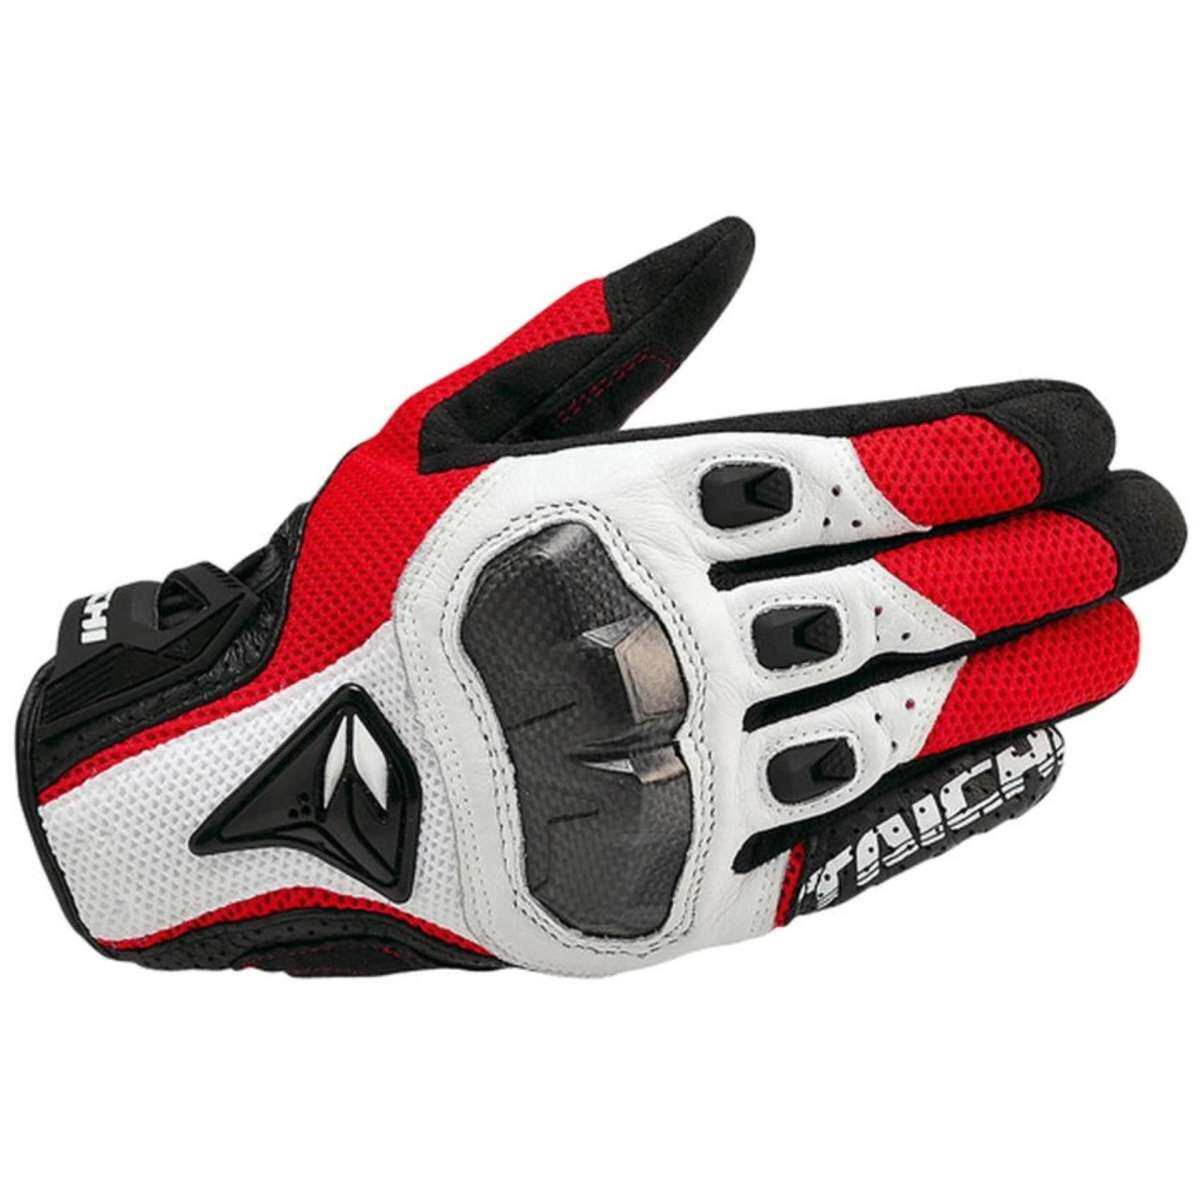 DualX RS Taichi RST391 Mens Perforated leather Motorcycle Mesh Gloves- L size